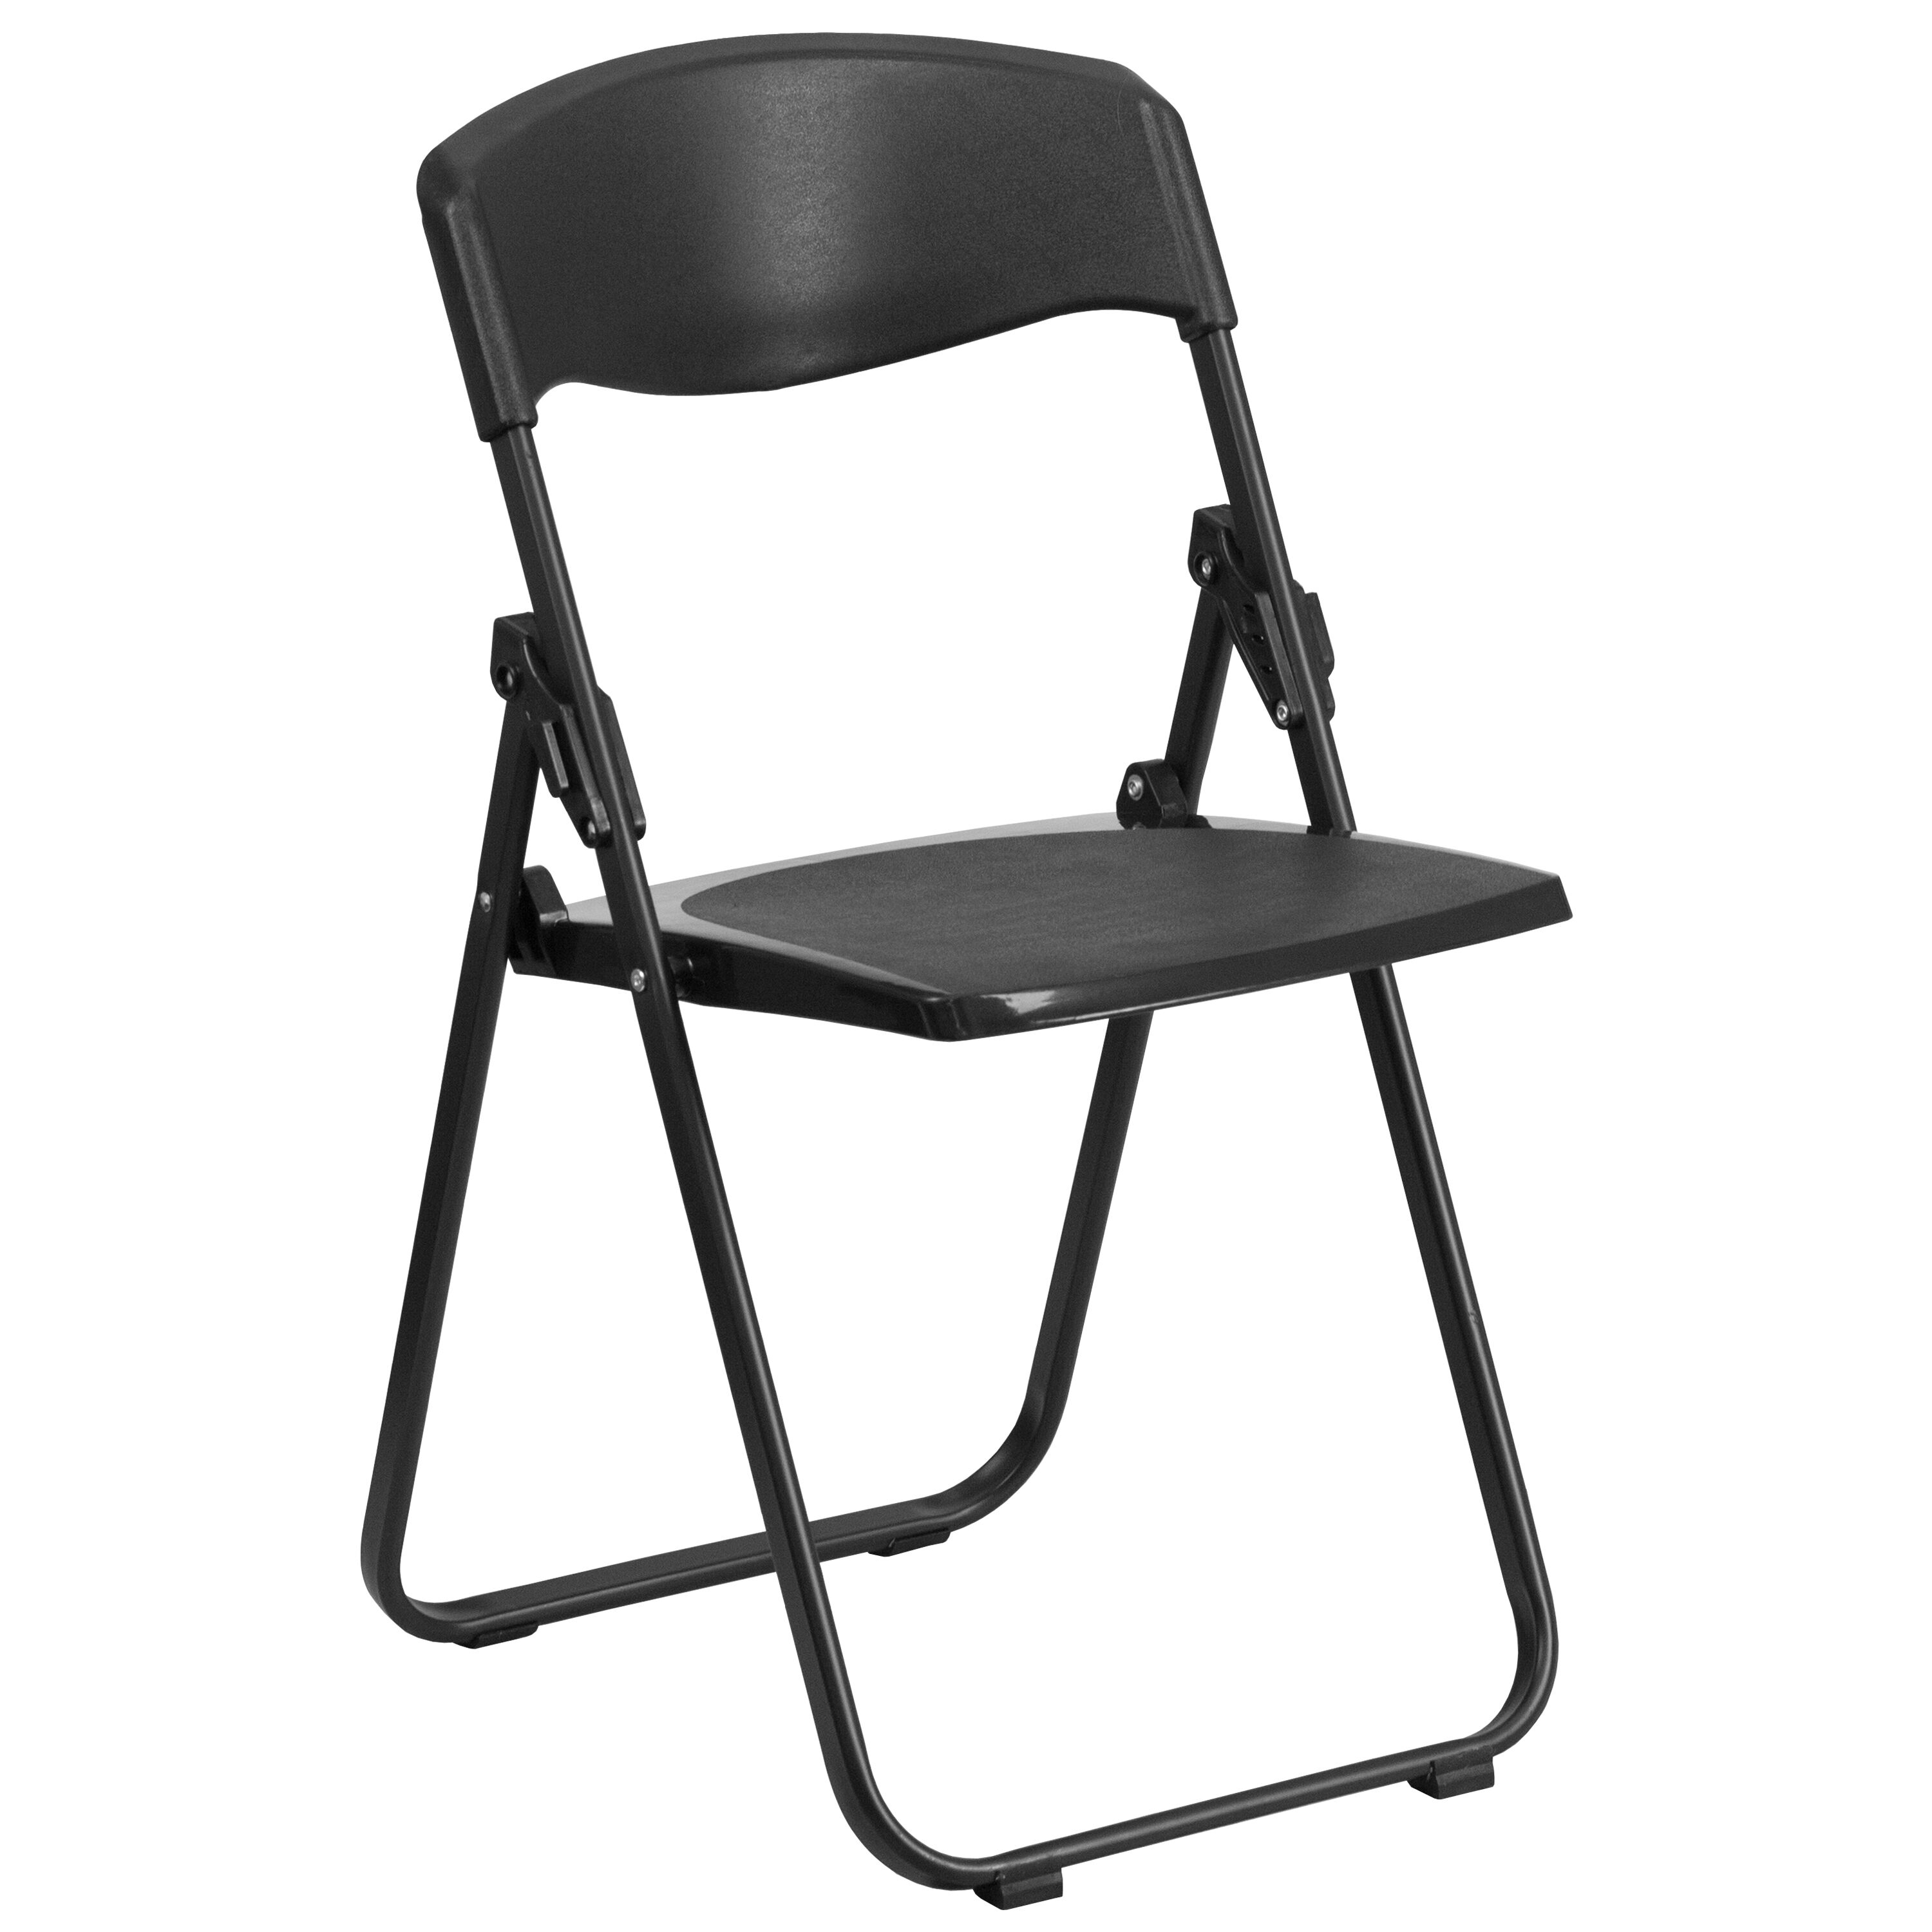 Capacity Heavy Duty Black Plastic Folding Chair With Built  ...